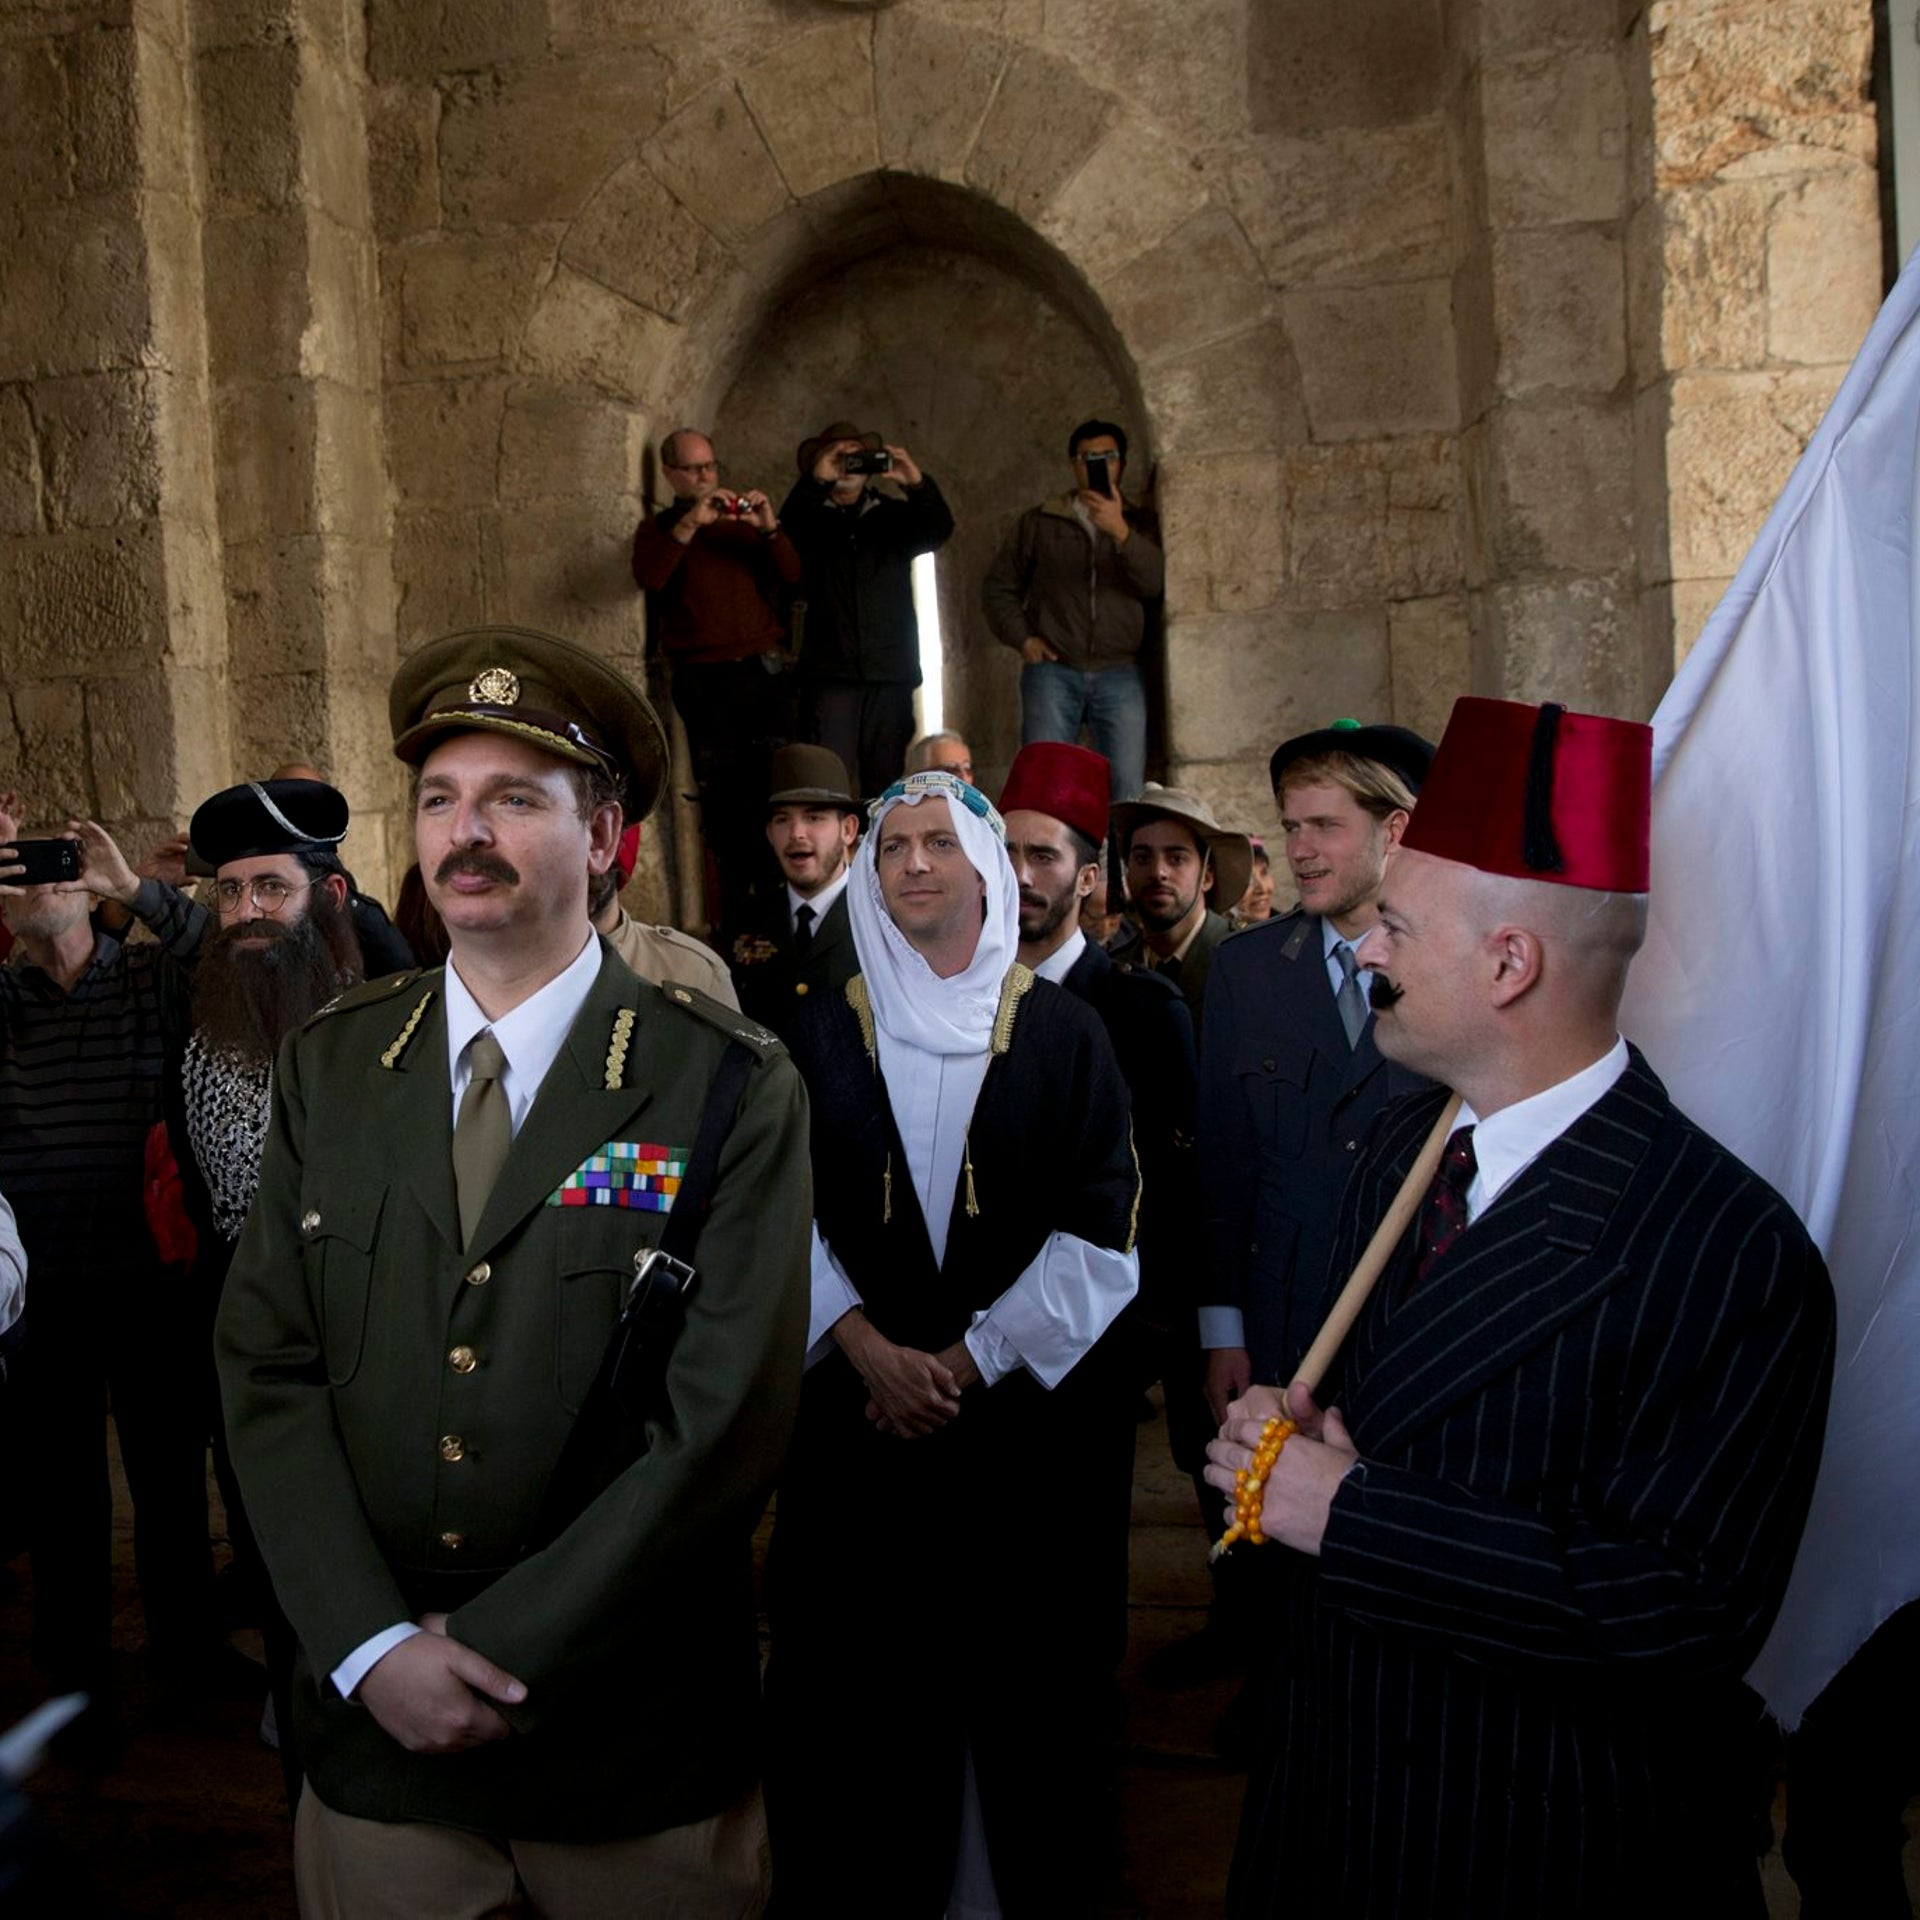 An actor dressed as General Edmund Allenby takes part in the reenactment of the general's entry to Jerusalem 100 years ago, December 11, 2017.